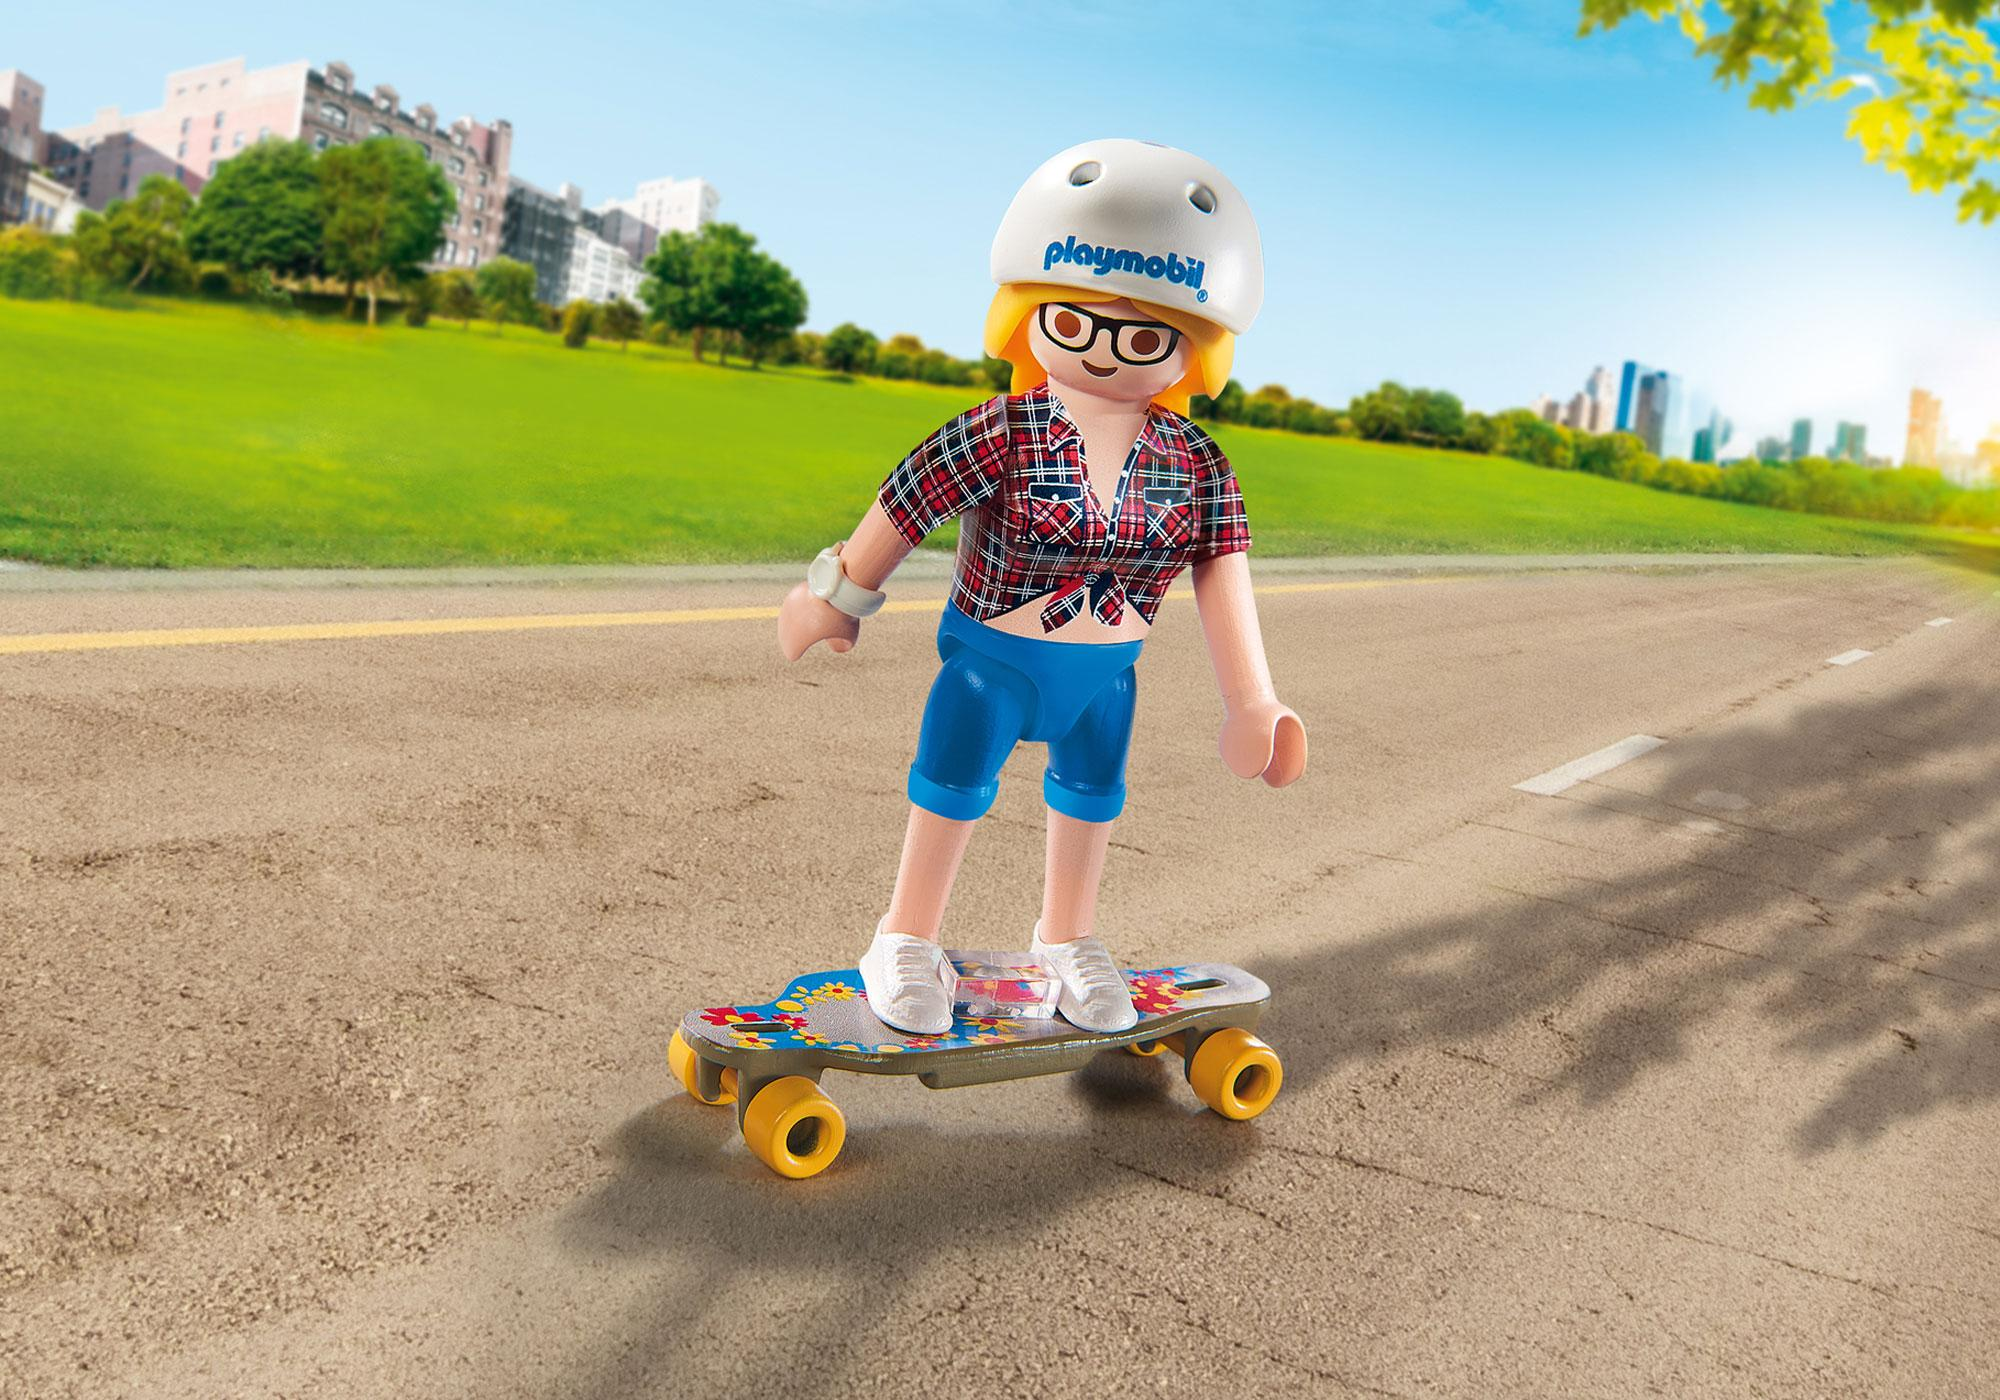 http://media.playmobil.com/i/playmobil/9338_product_detail/Skateboarder